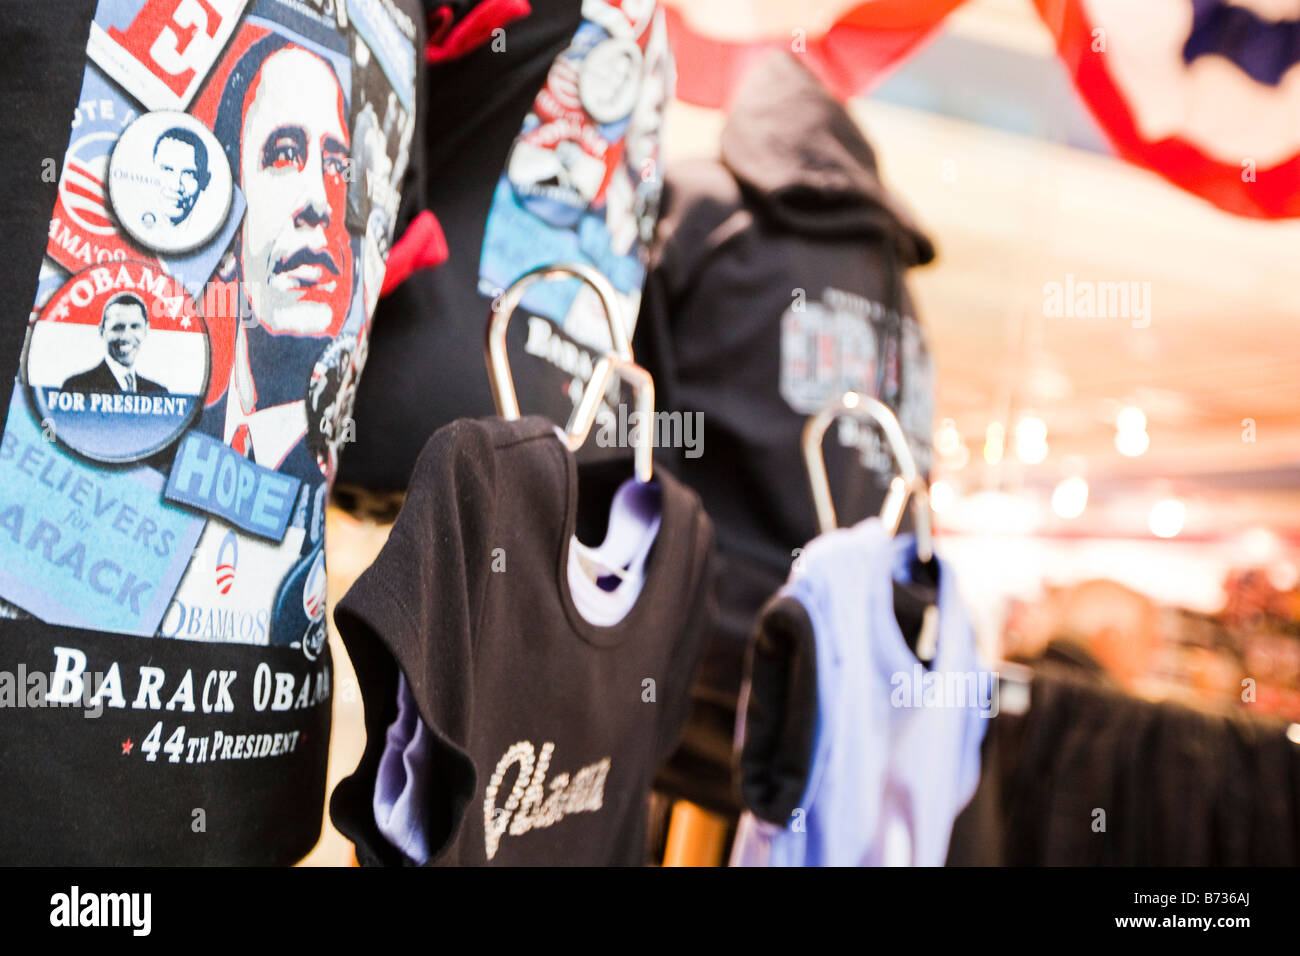 Barack Obama tee shirt in a store - Stock Image